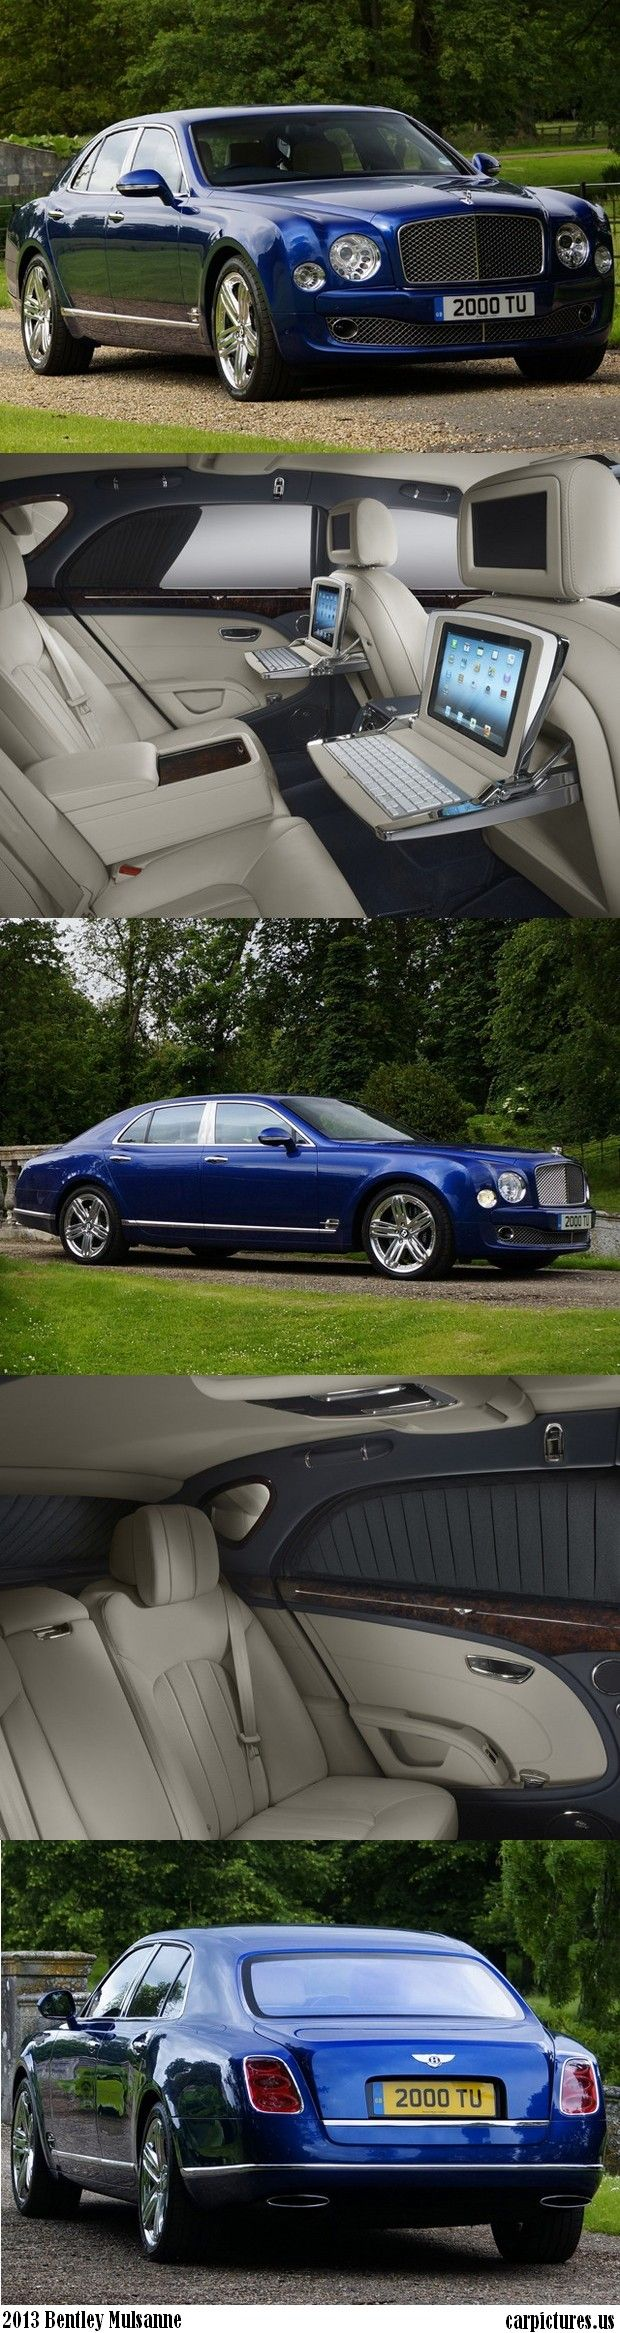 2013 New Bentley Mulsanne Price and Specs. Read full Article: http://carpictures.us/2013-new-bentley-mulsanne-price-and-specs/